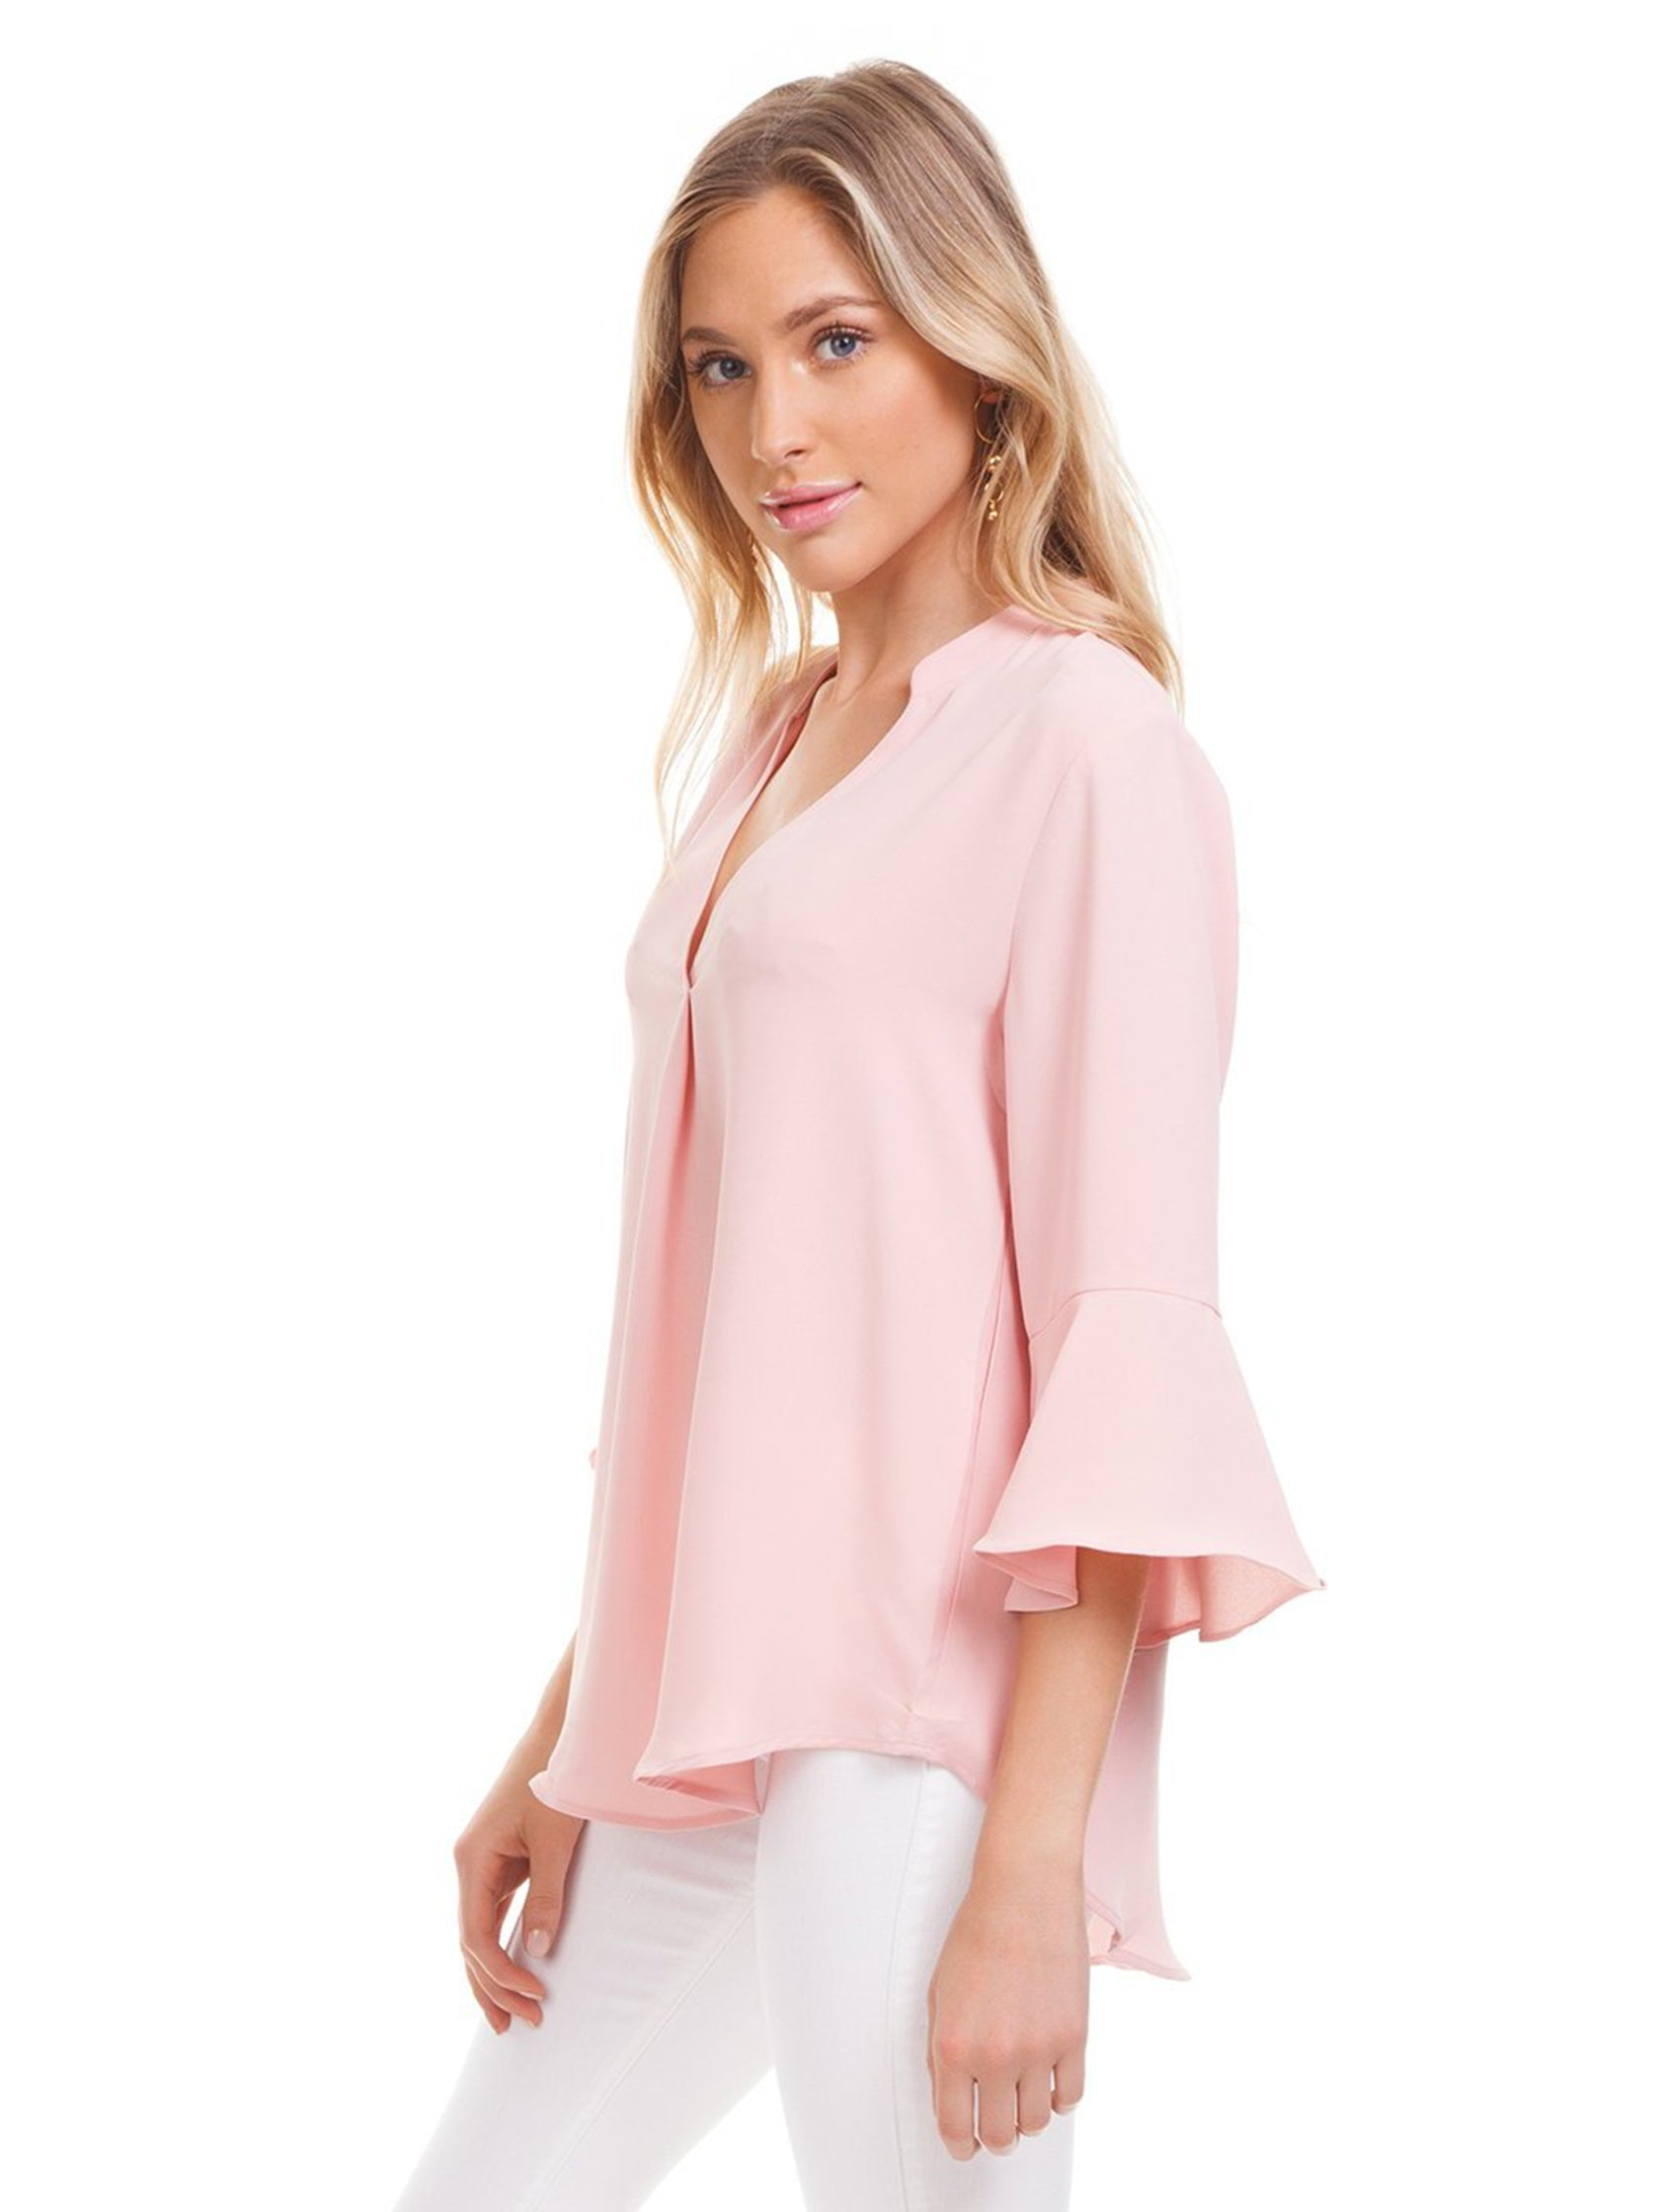 Women wearing a top rental from Lush called V-neck Ruffle Top